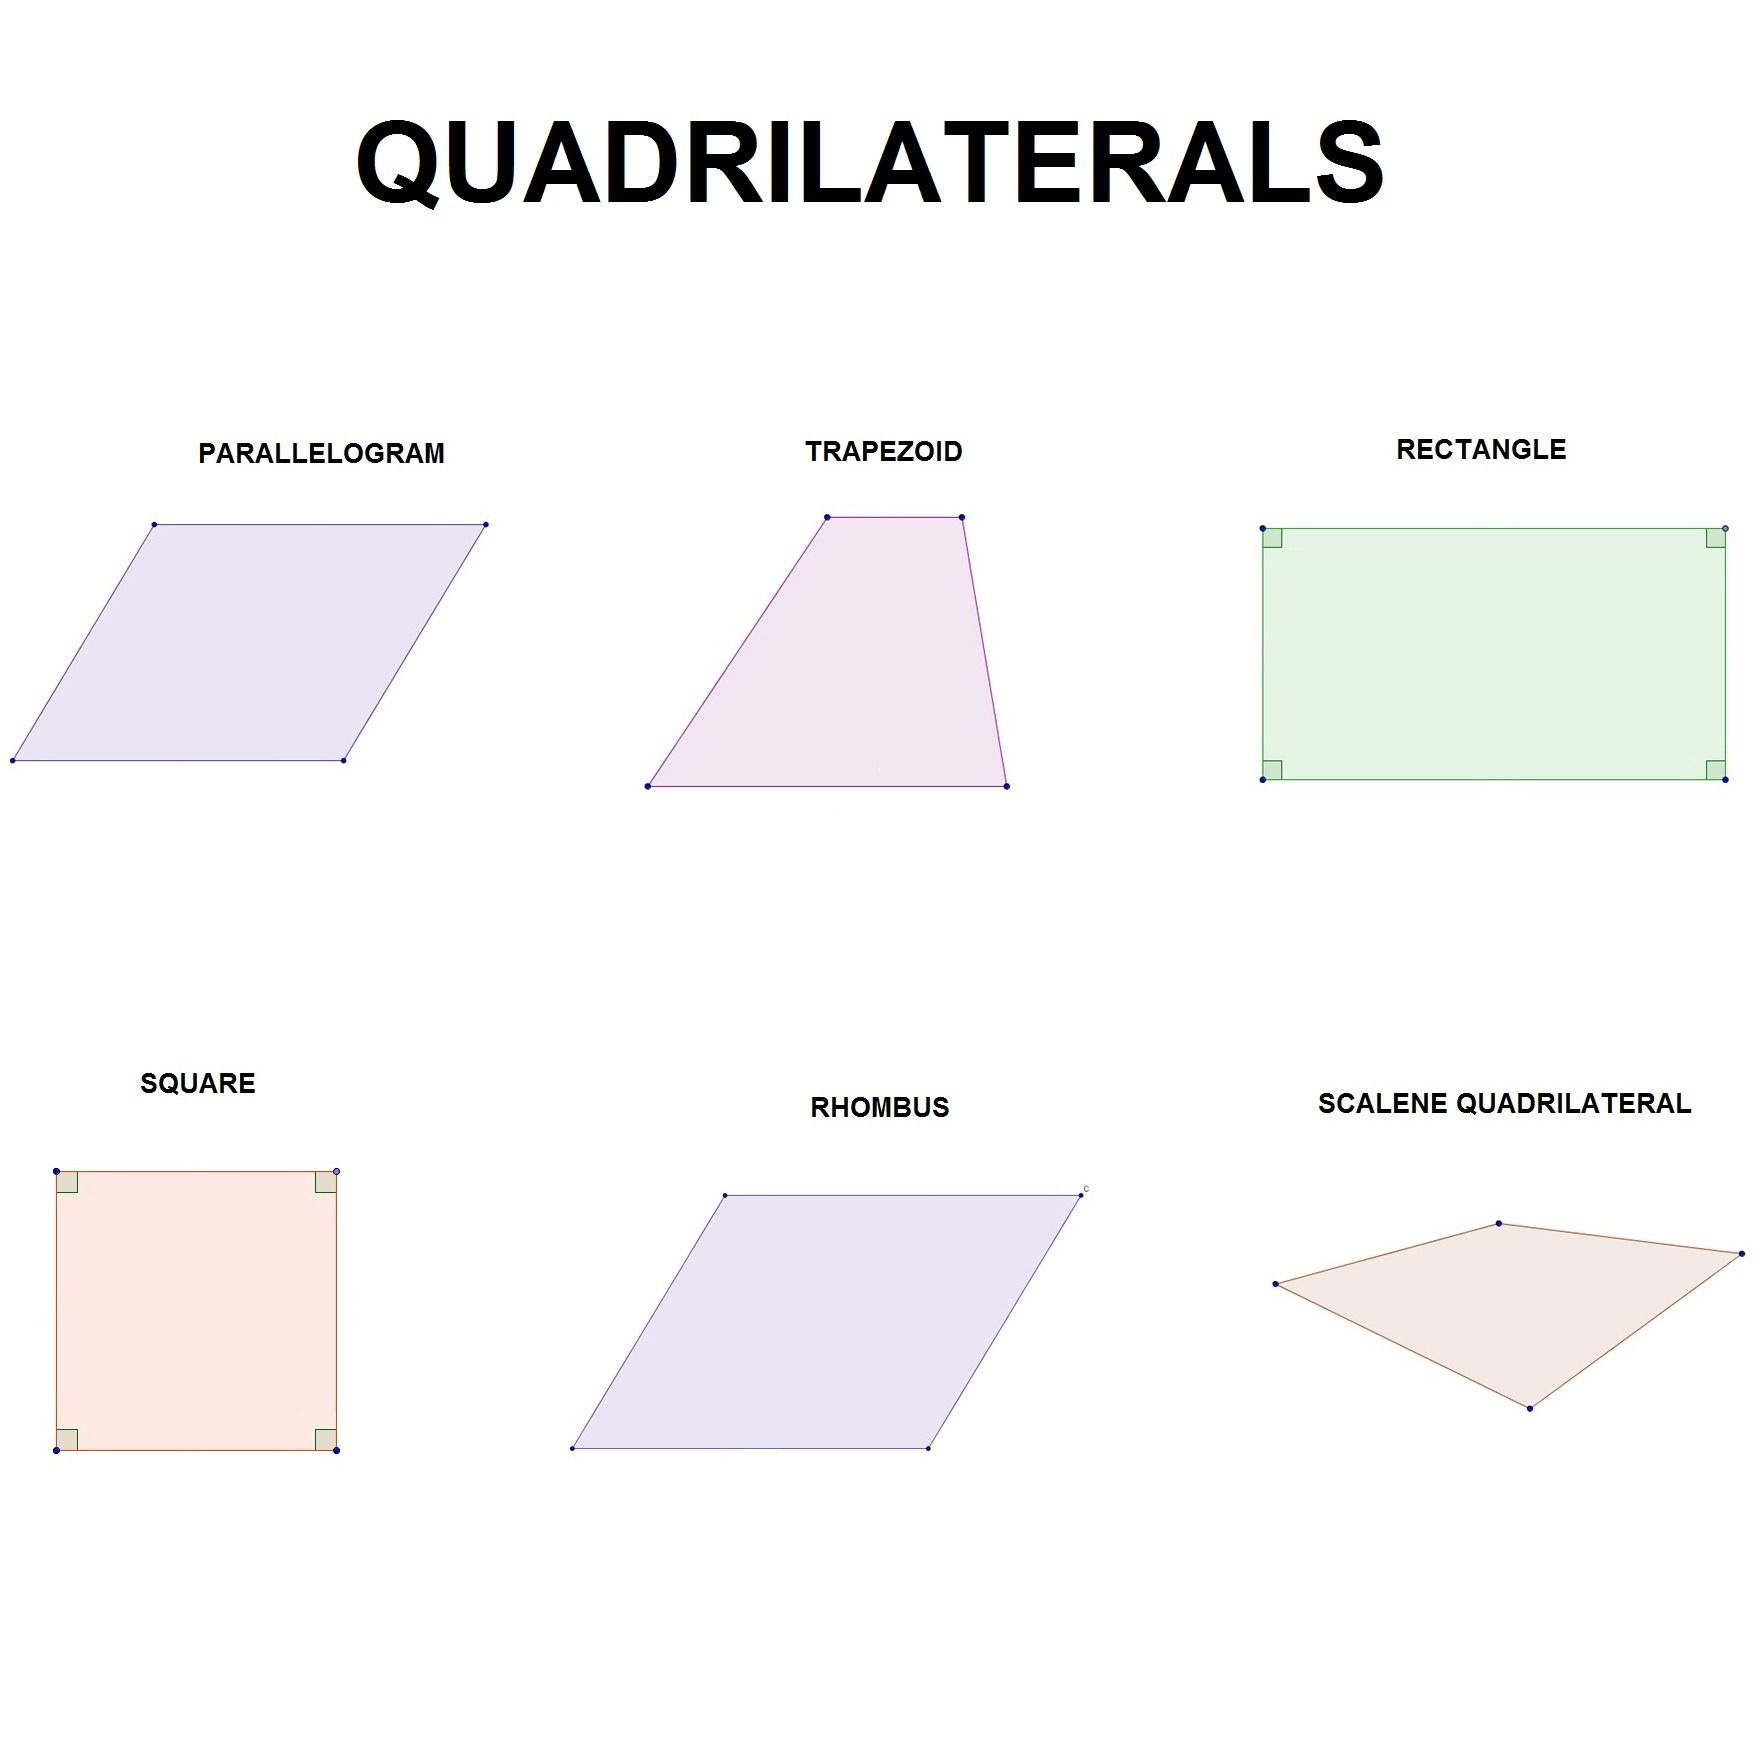 What Are The Types Of Quadrilaterals